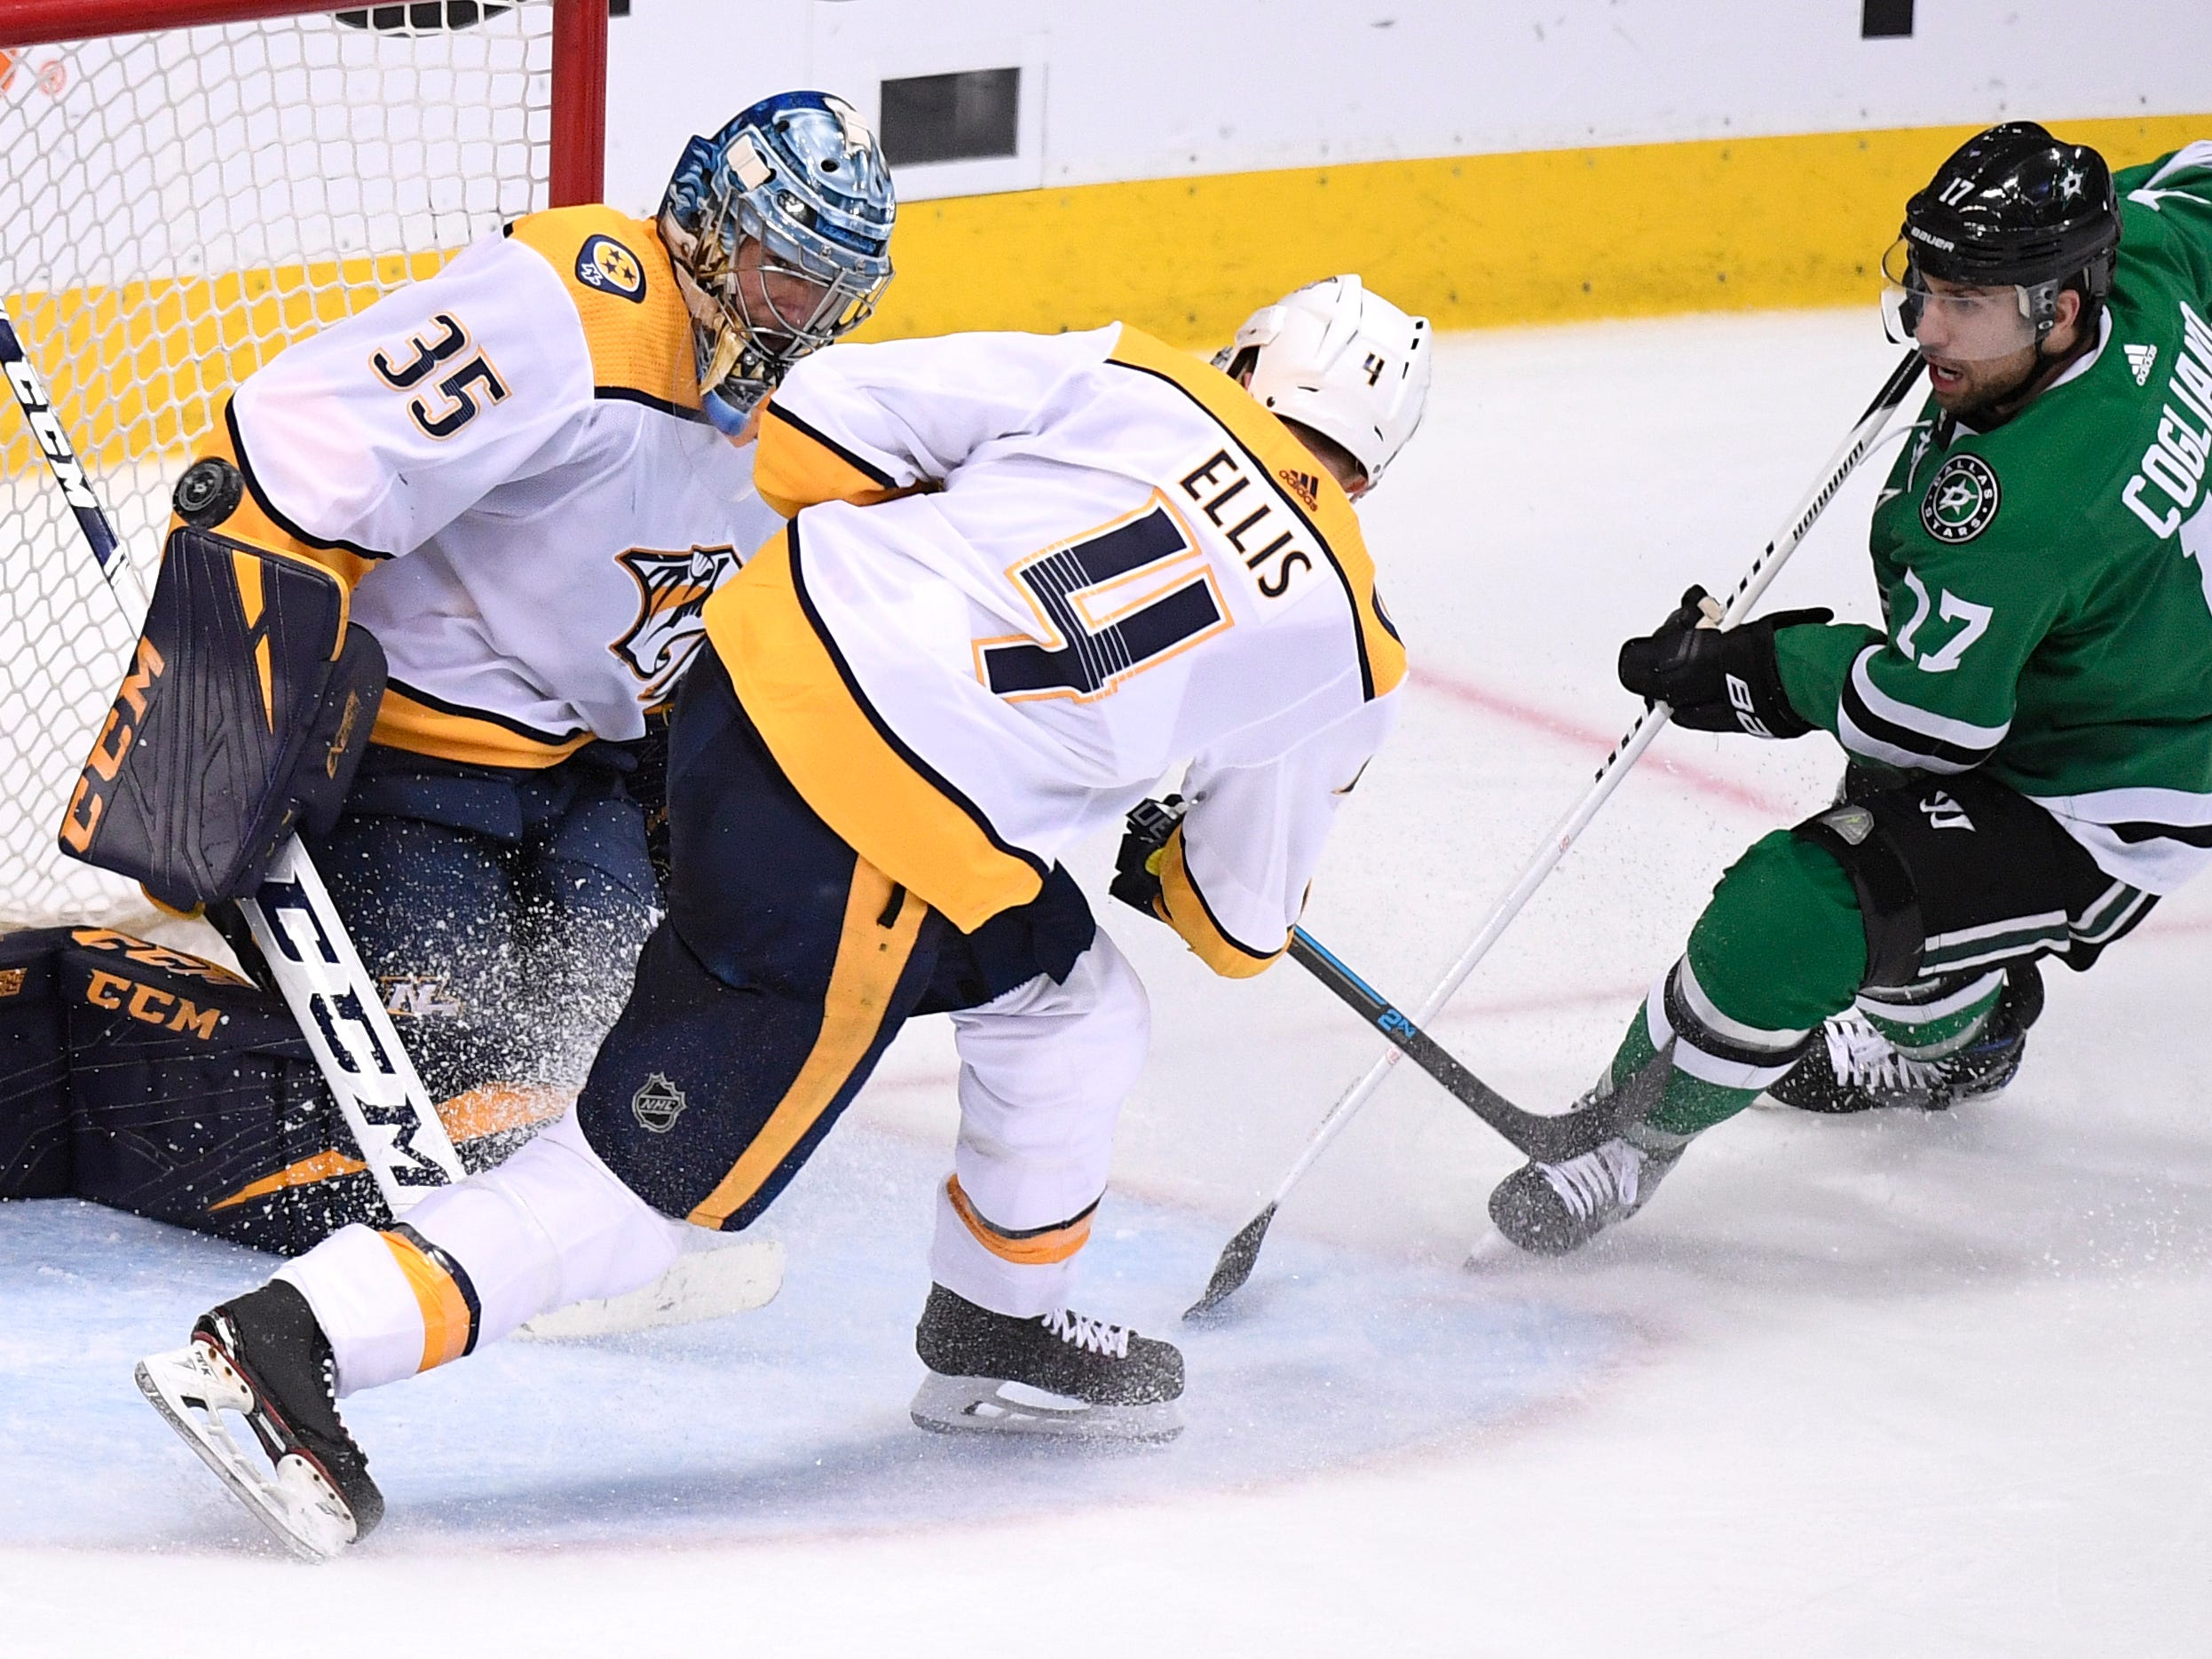 The shot by Dallas Stars center Andrew Cogliano (17) comes up wide of the net defended by Nashville Predators goaltender Pekka Rinne (35) and defenseman Ryan Ellis (4) during the third period of the divisional semifinal game at the American Airlines Center in Dallas, Texas, Monday, April 22, 2019.